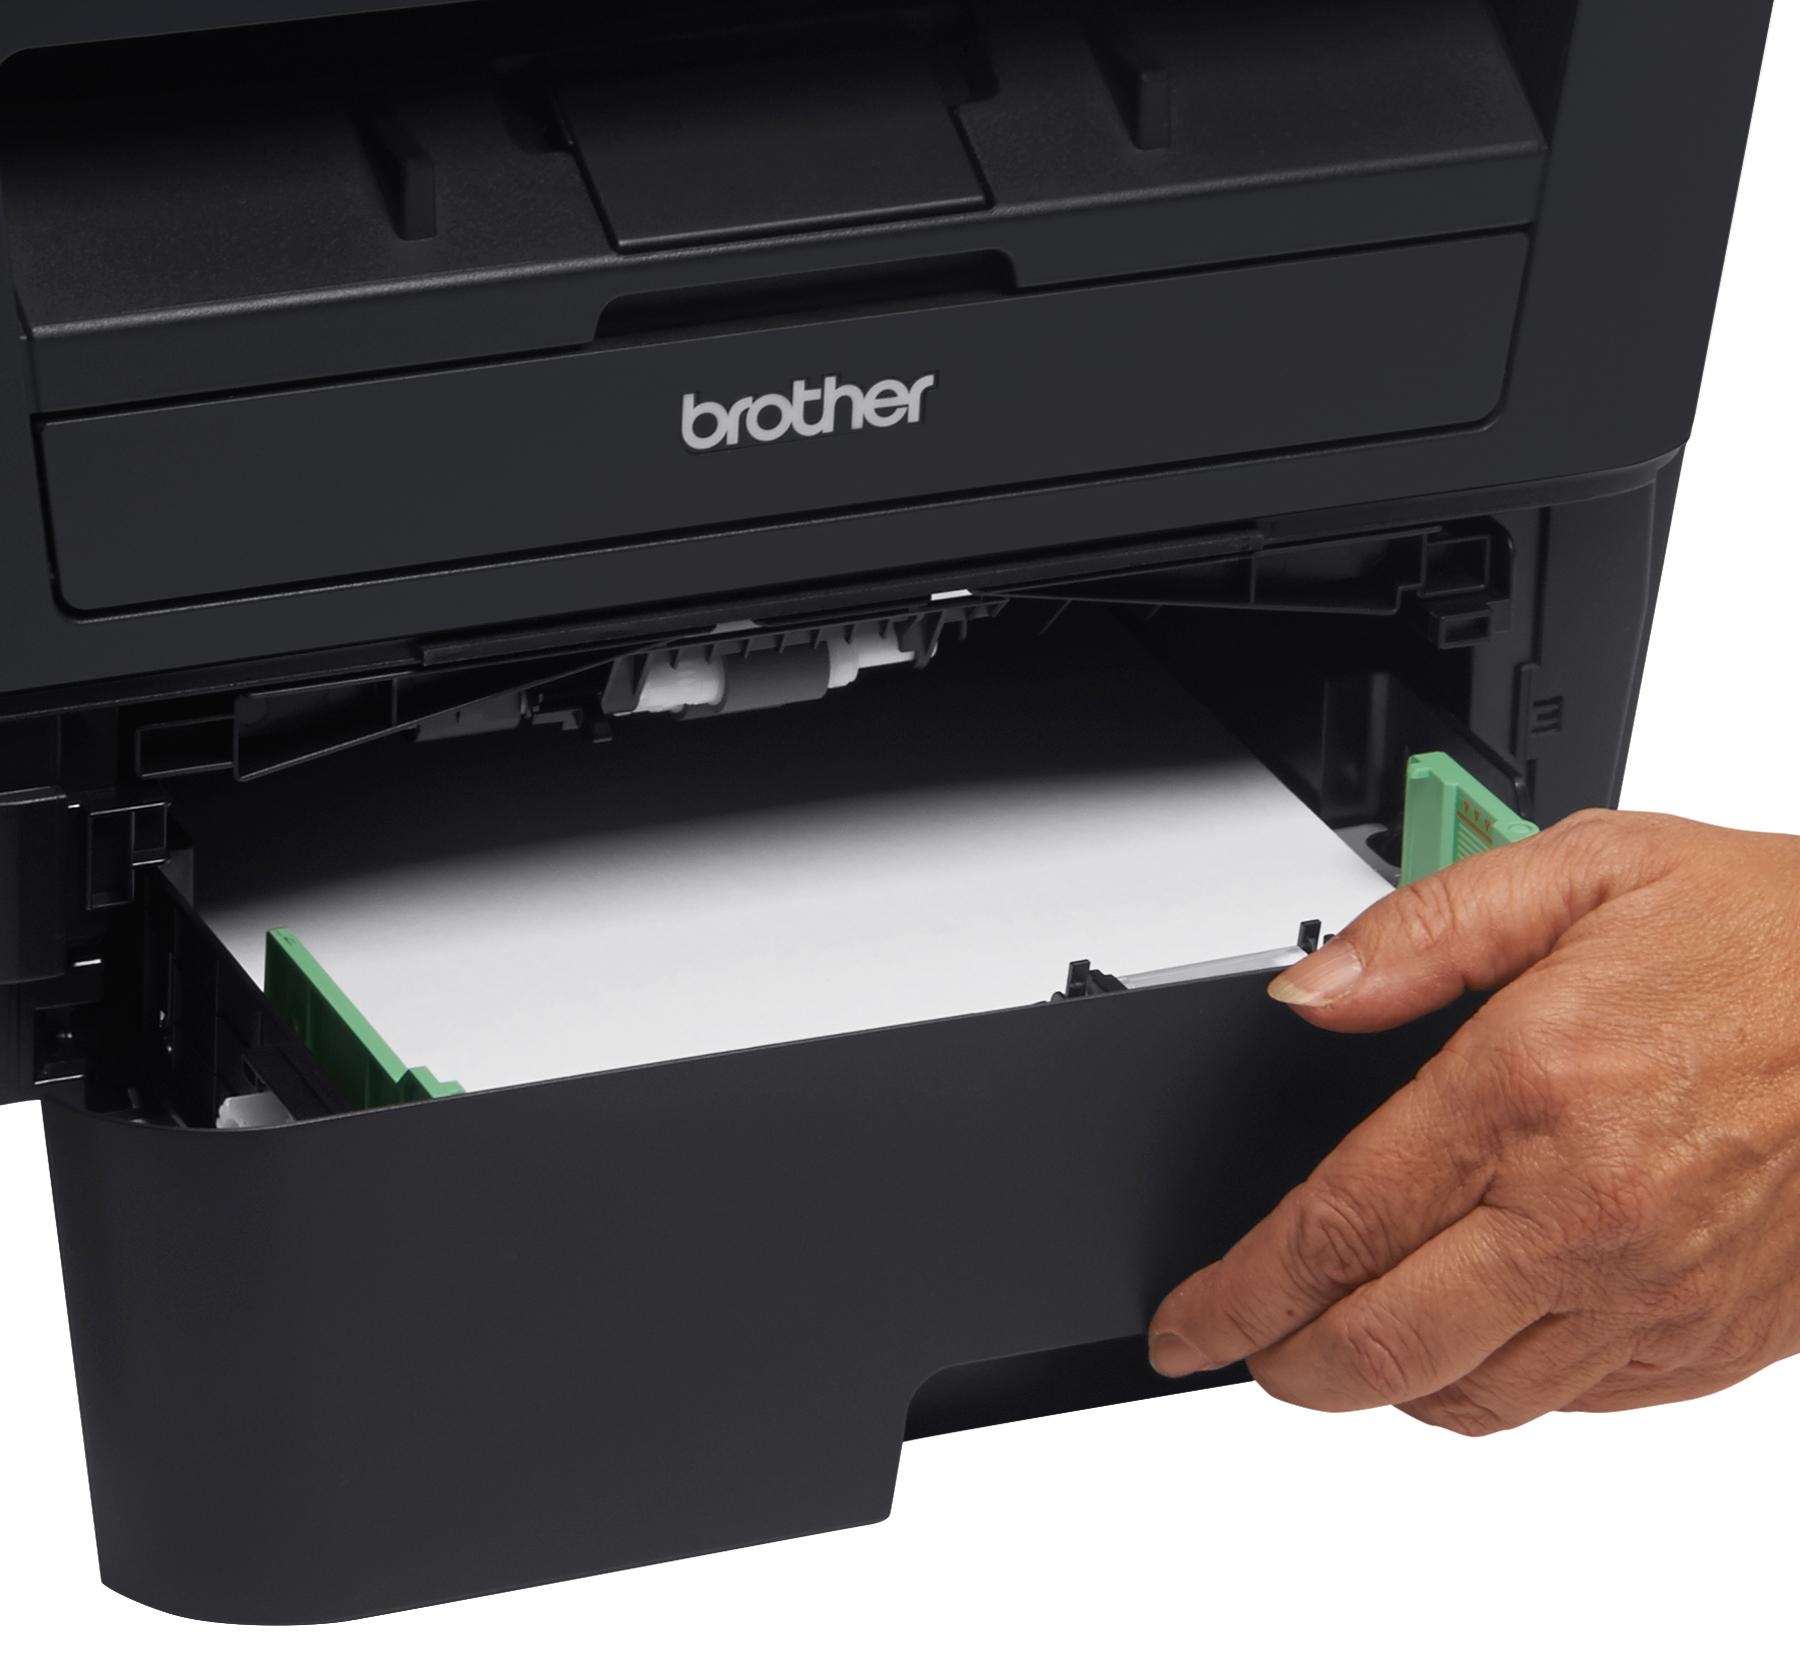 how to connect brother printer to computer wired directly